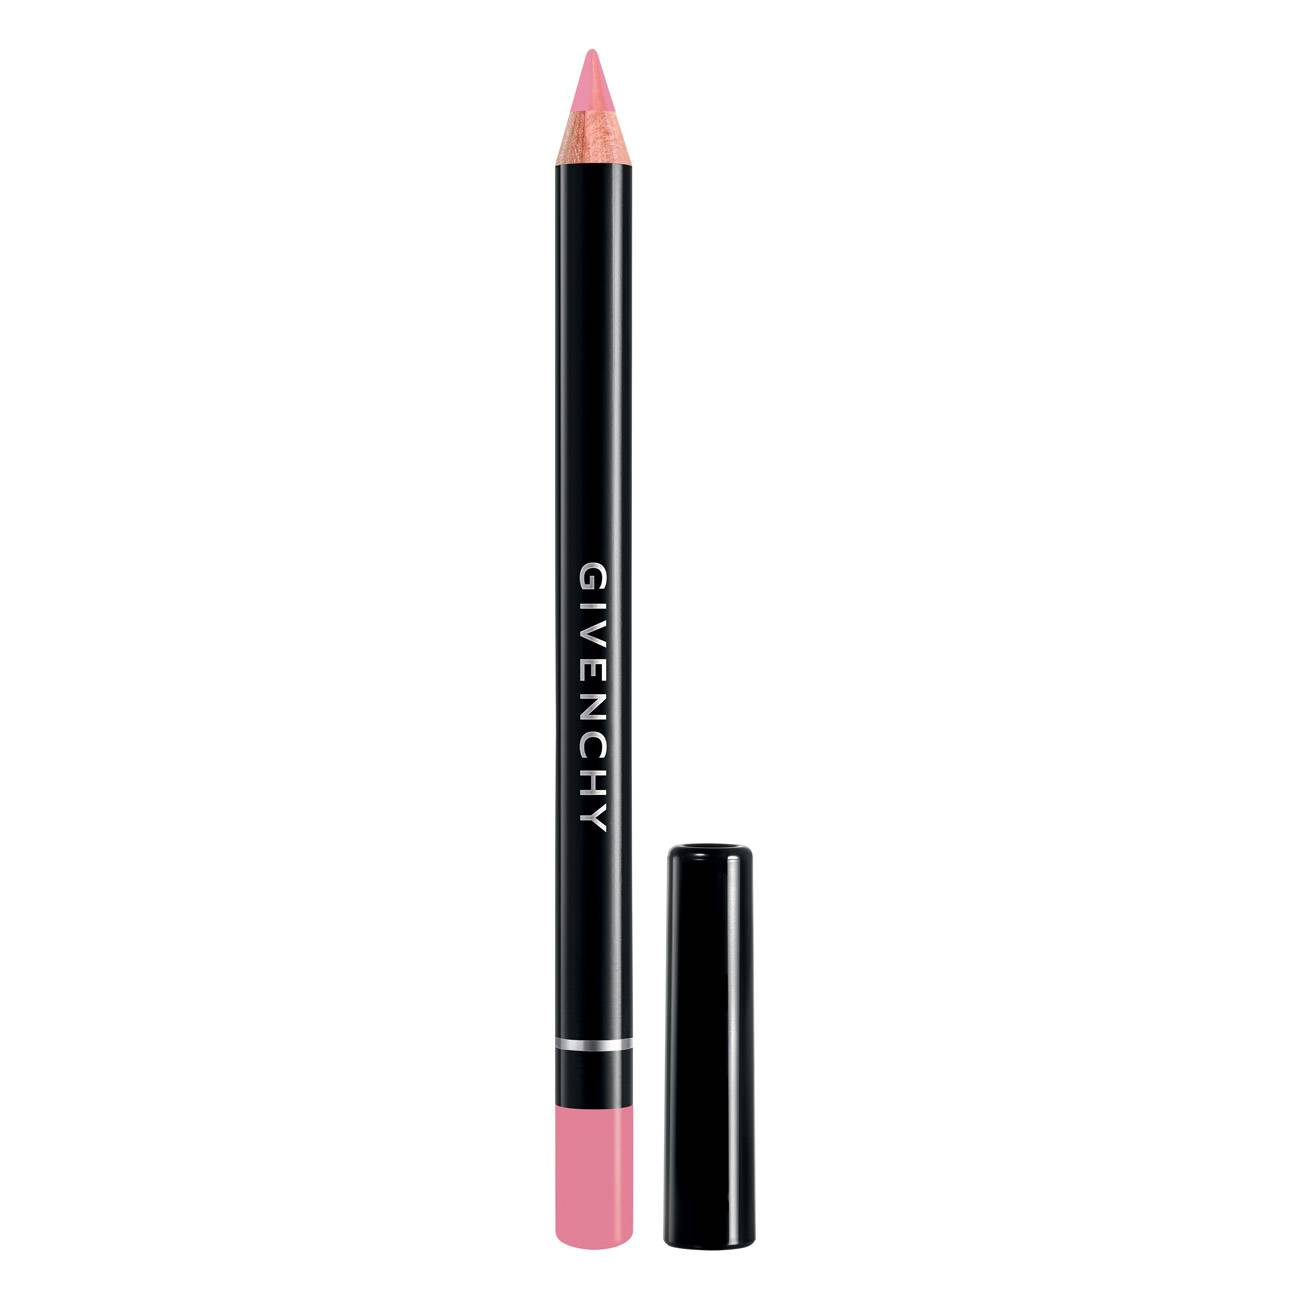 Lip Liner 1 G Rose Mutin 1 Givenchy imagine 2021 bestvalue.eu